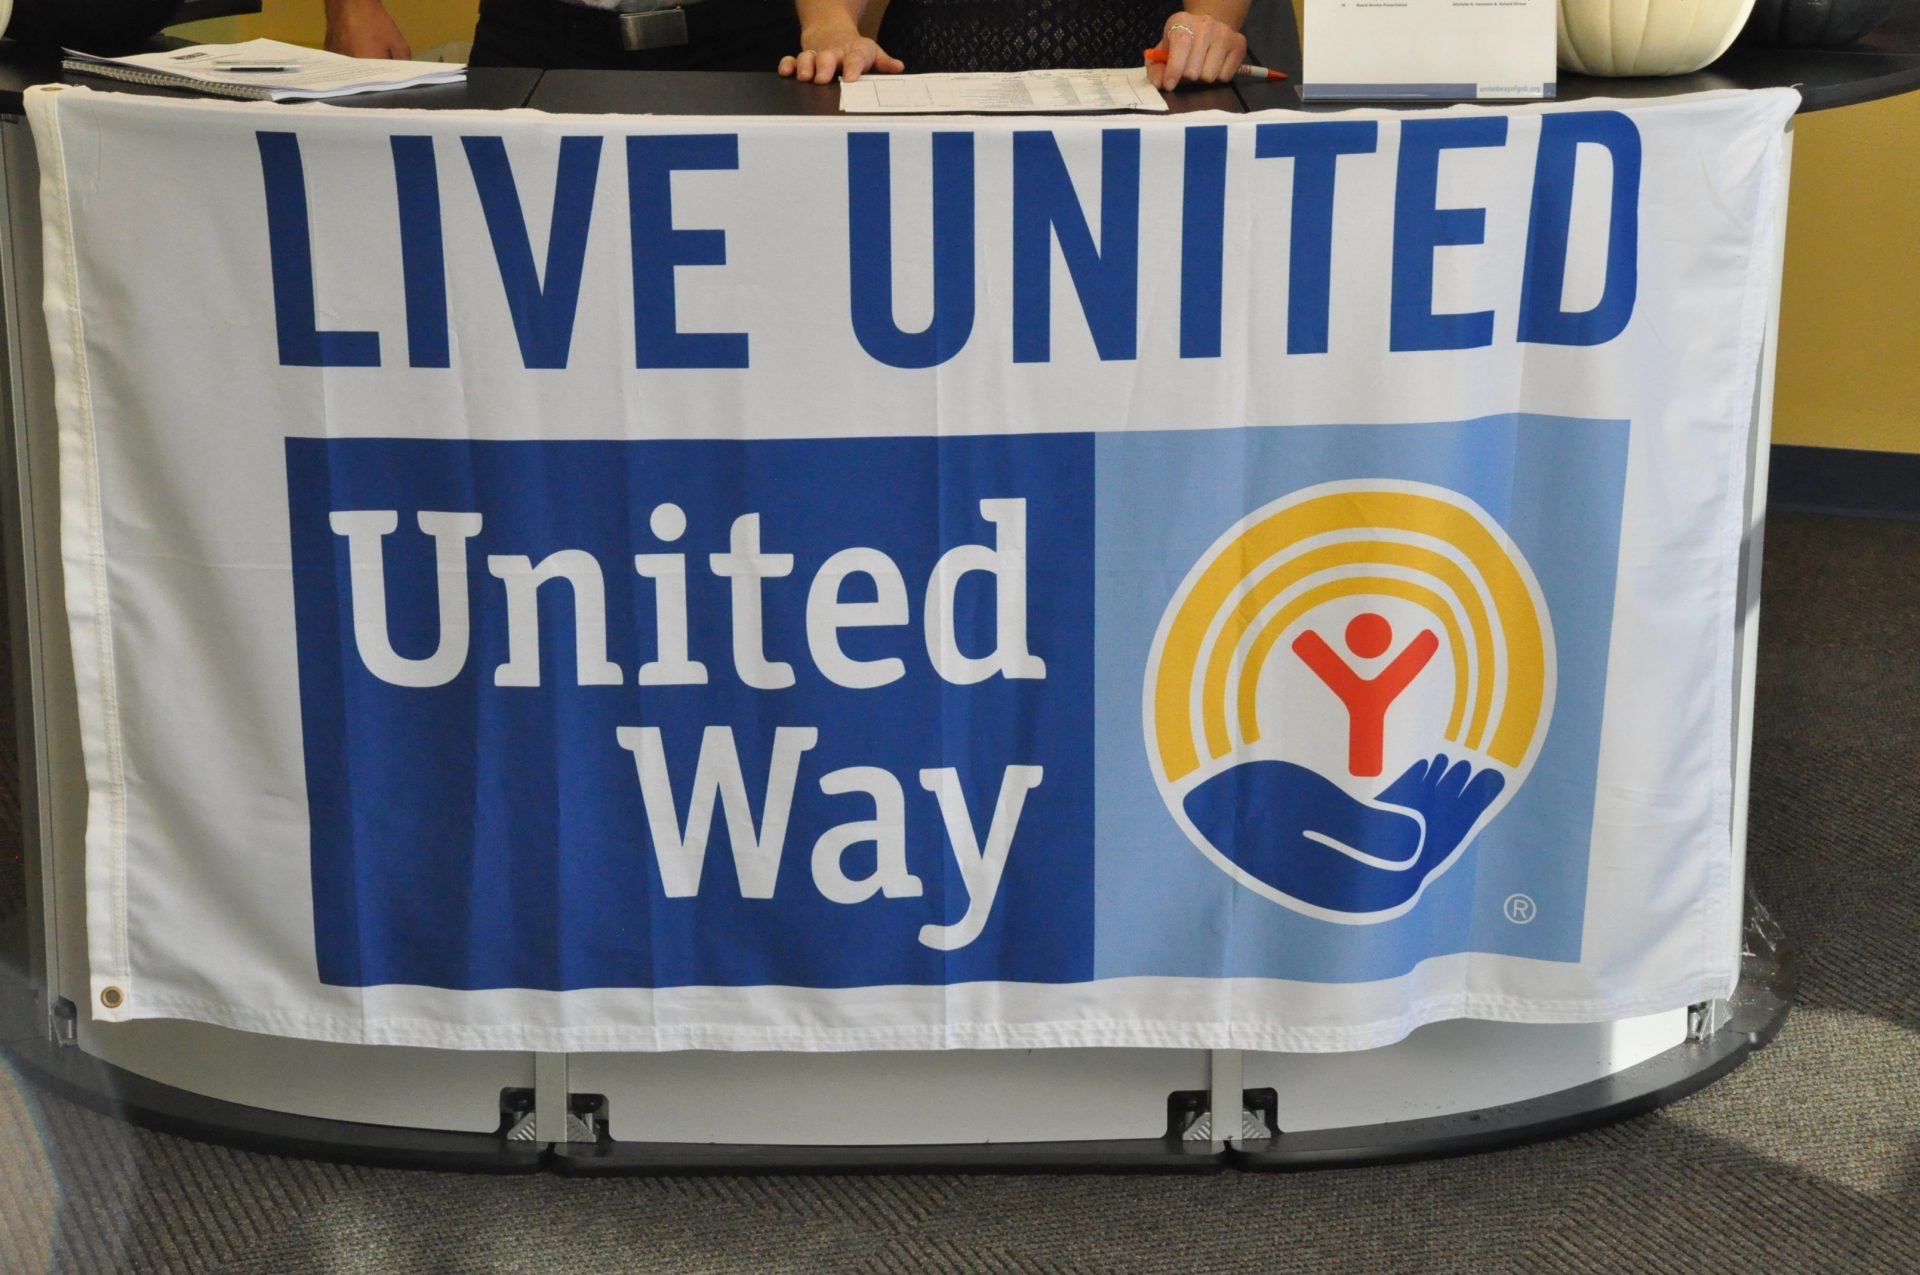 Live United United way banner on table